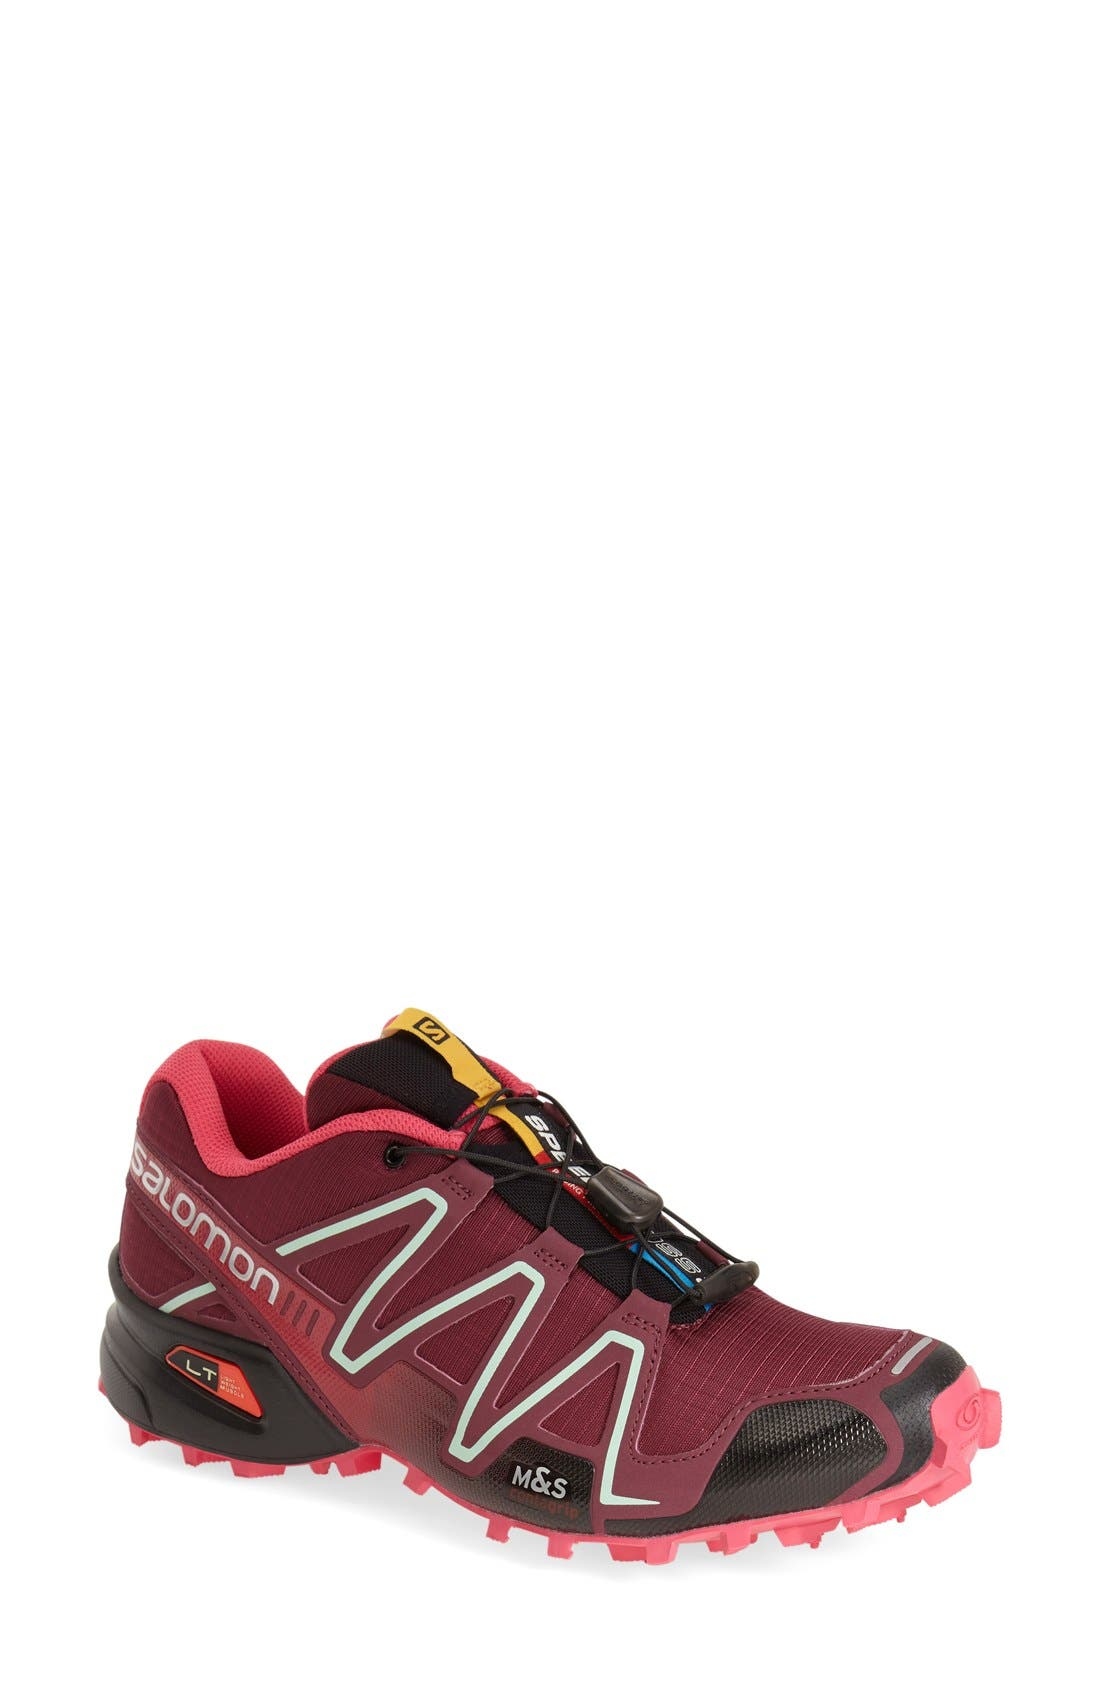 Main Image - Salomon 'Speedcross 3' Water Resistant Trail Running Shoe